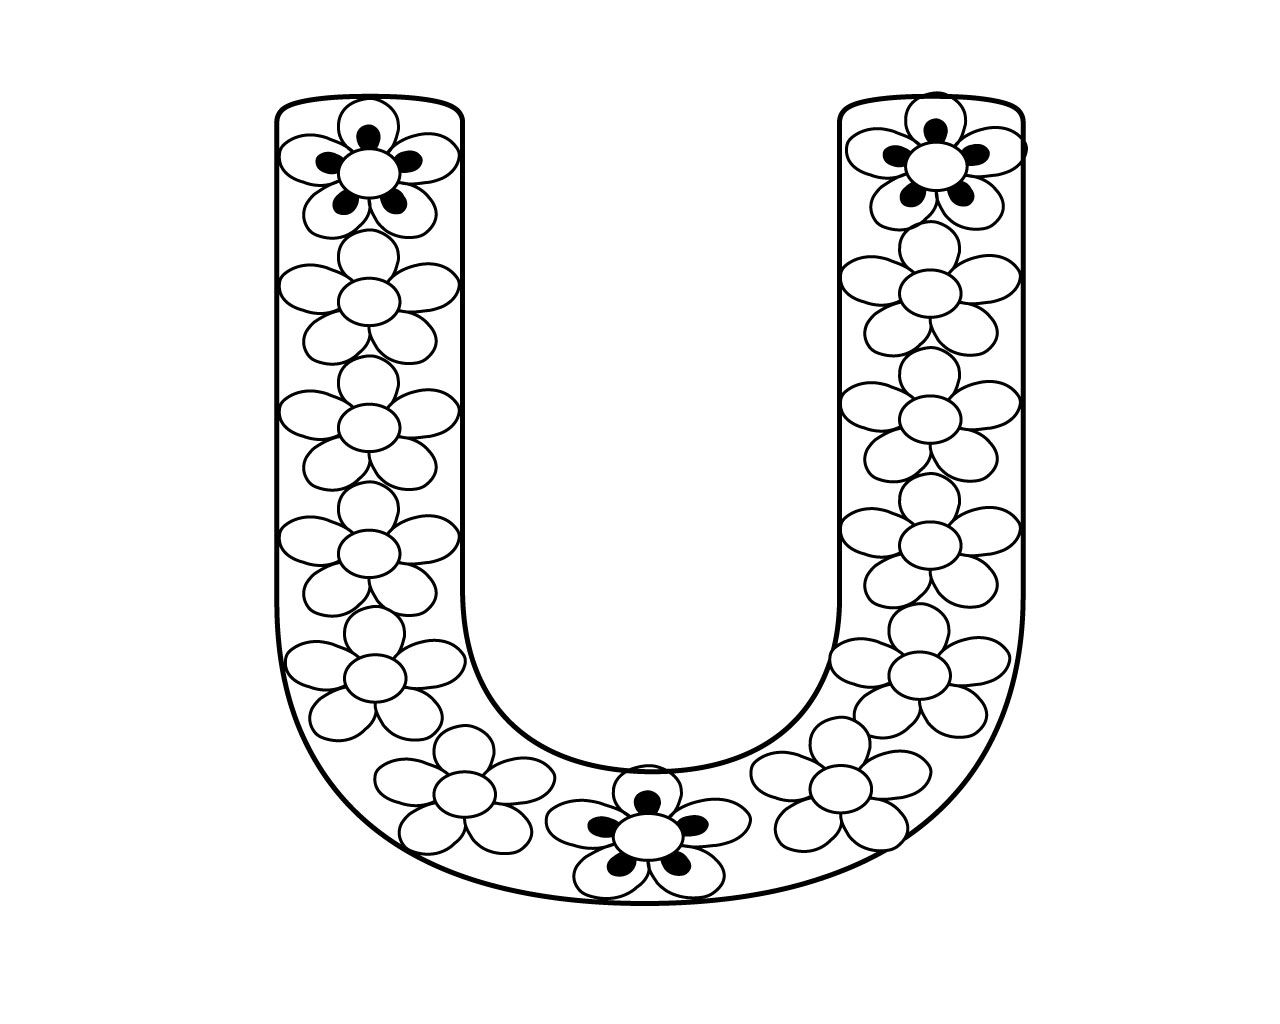 Letter U Coloring Page To Print for Your Little Ones (With